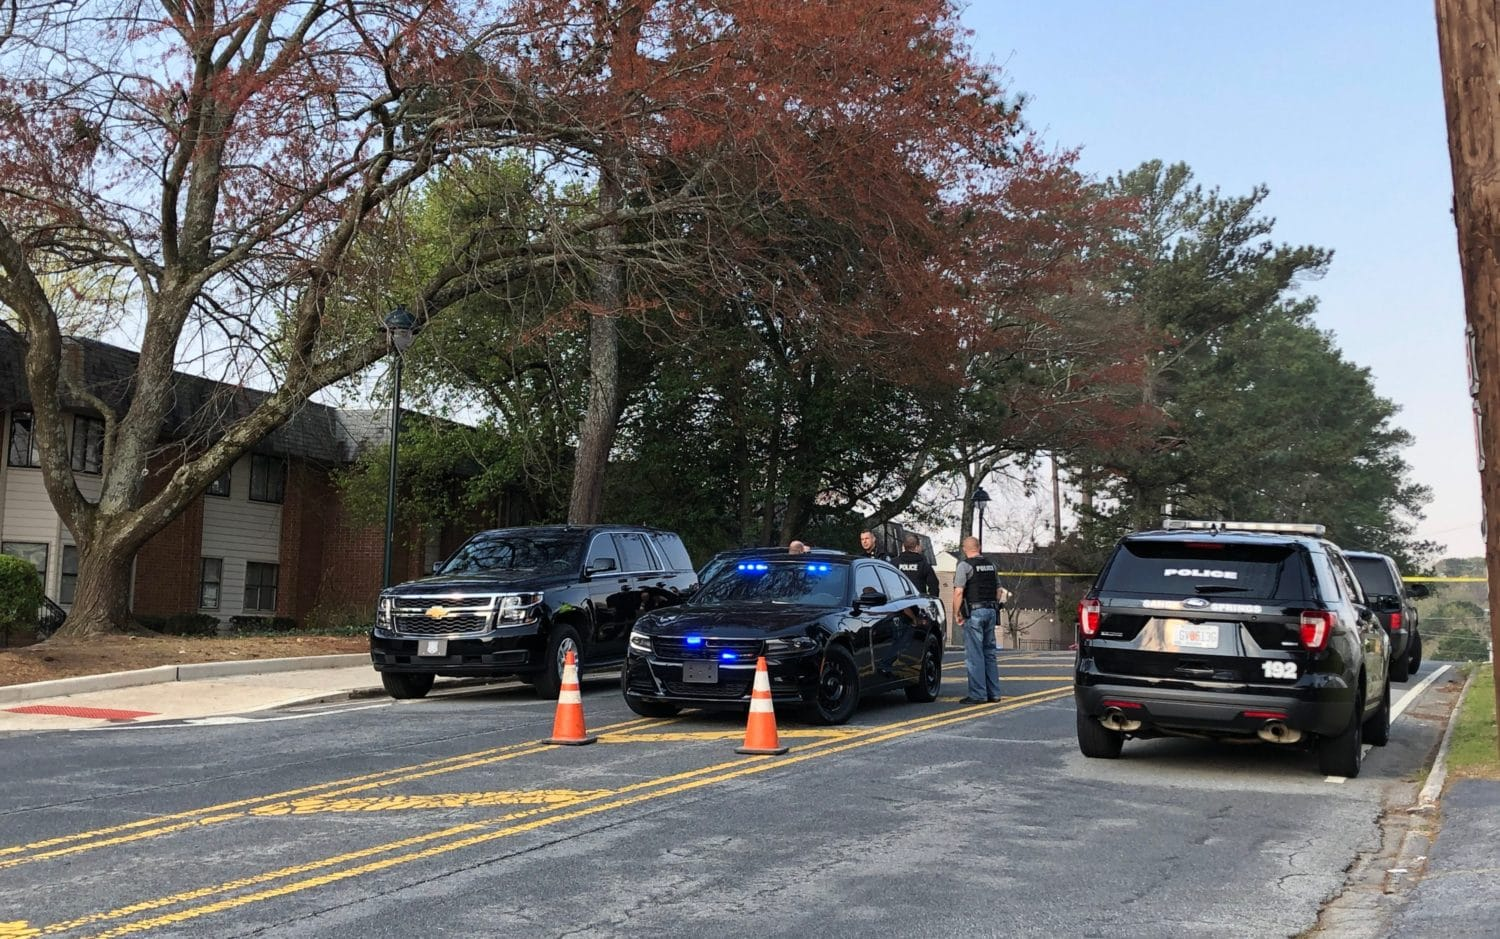 Man shot, killed by Sandy Springs police, GBI says